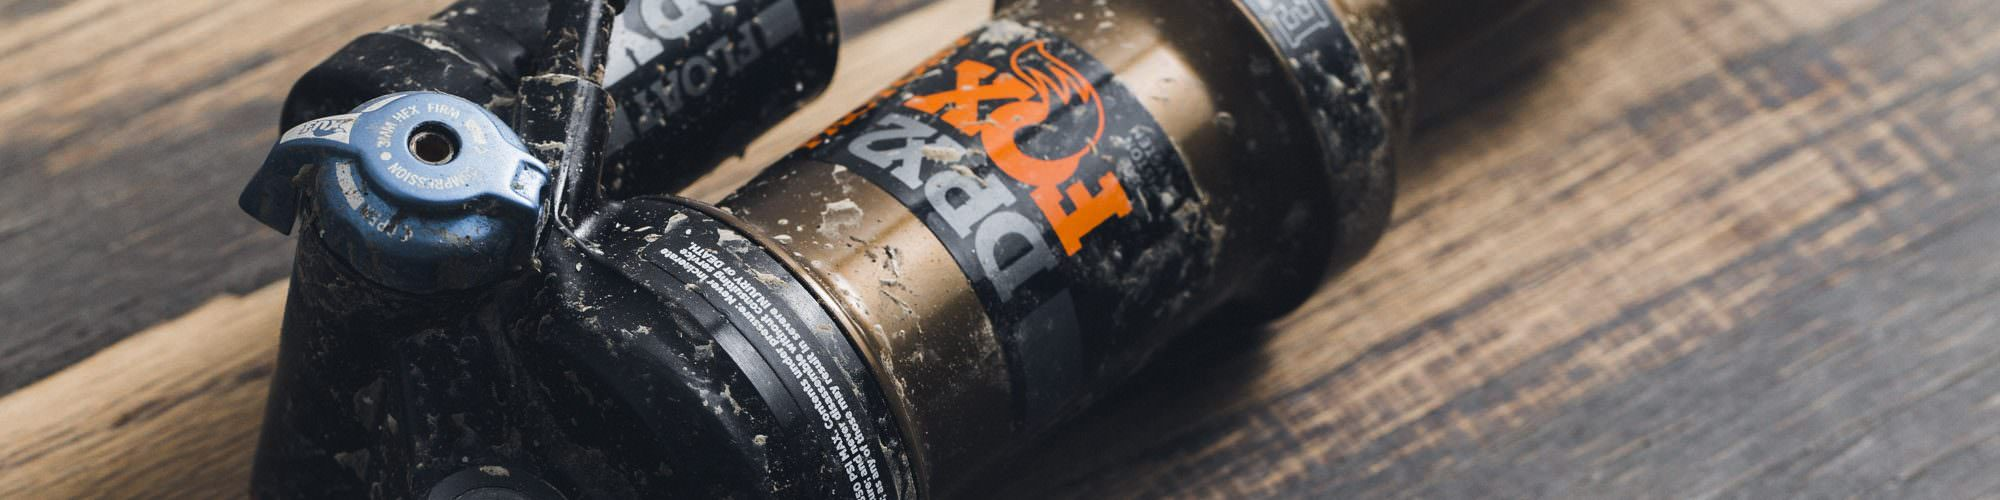 First Ride Review: FOX DPX2 Air Shock – Shocking News